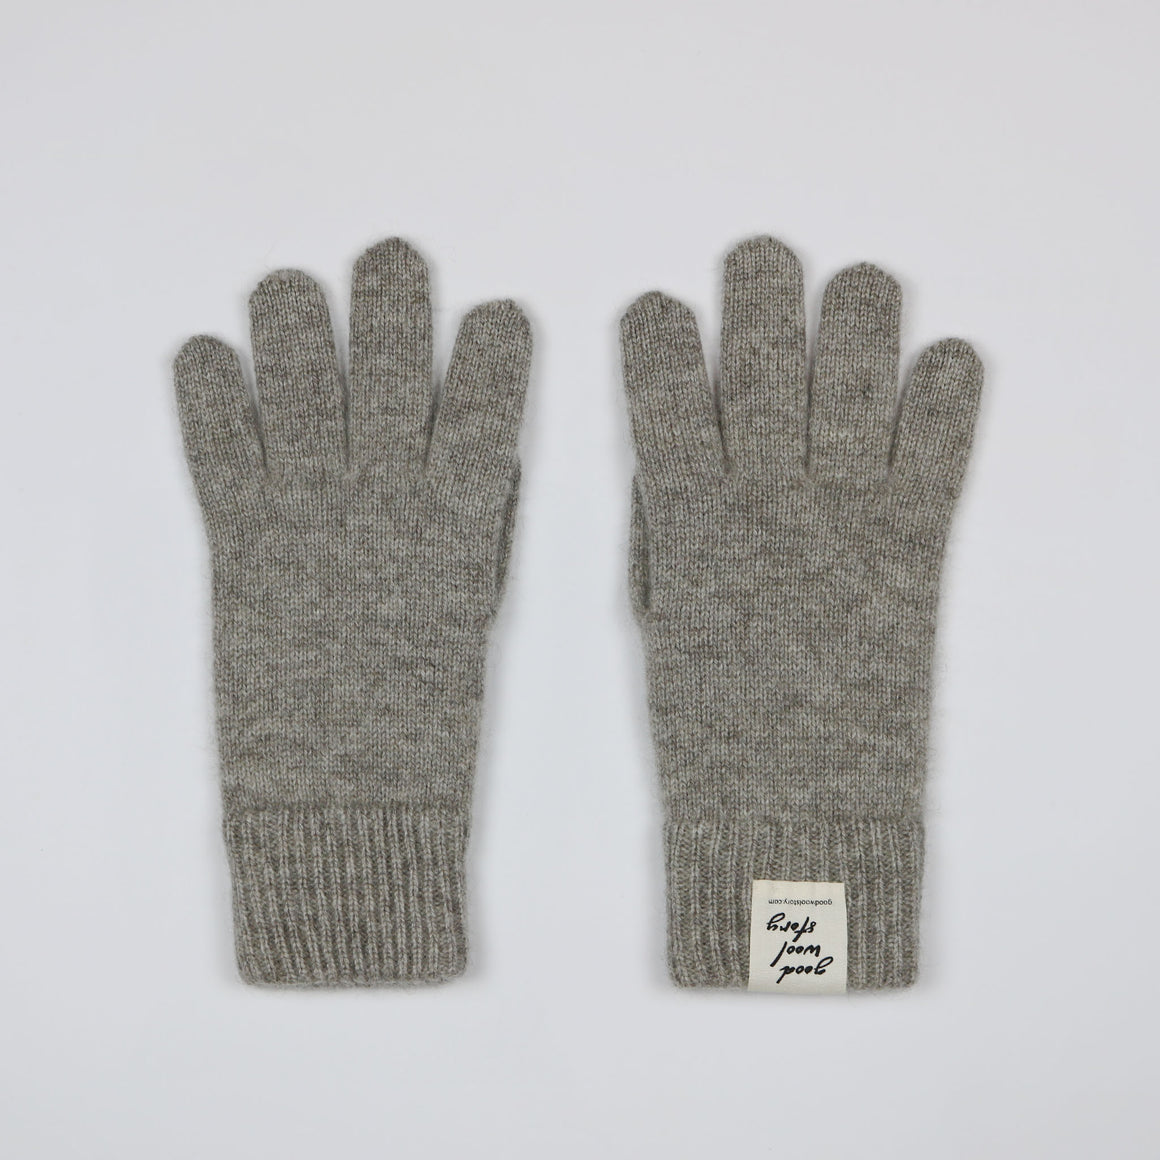 'Gentle' Women's Gloves